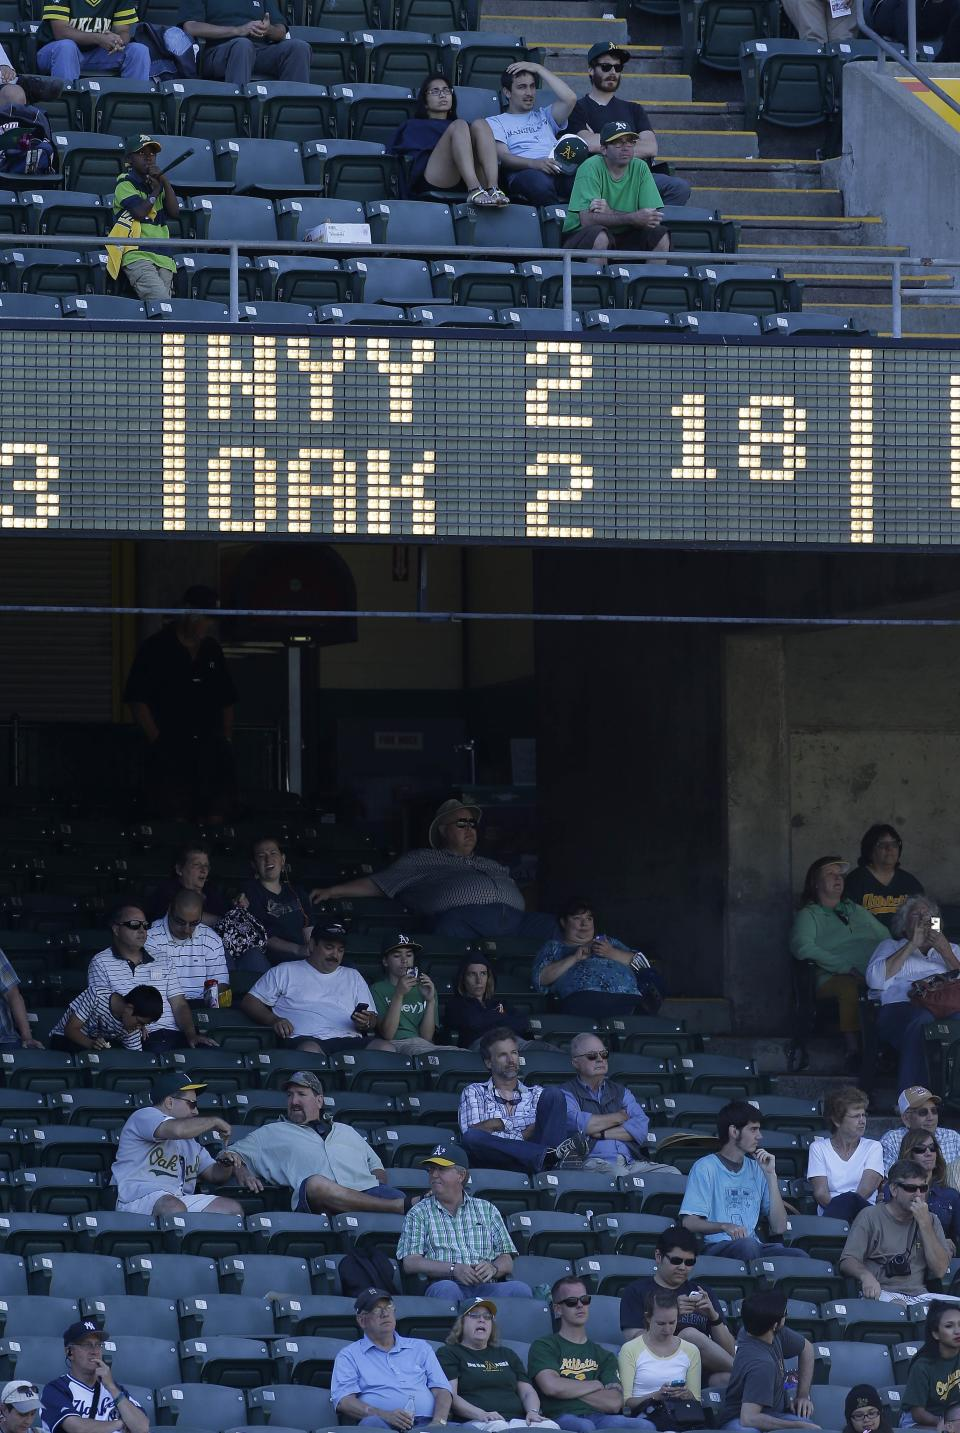 Fans watch from left field during the 18th inning of a baseball game between the Oakland Athletics and New York Yankees Thursday, June 13, 2013, in Oakland, Calif. Oakland won 3-2 in 18 innings (AP Photo/Eric Risberg)